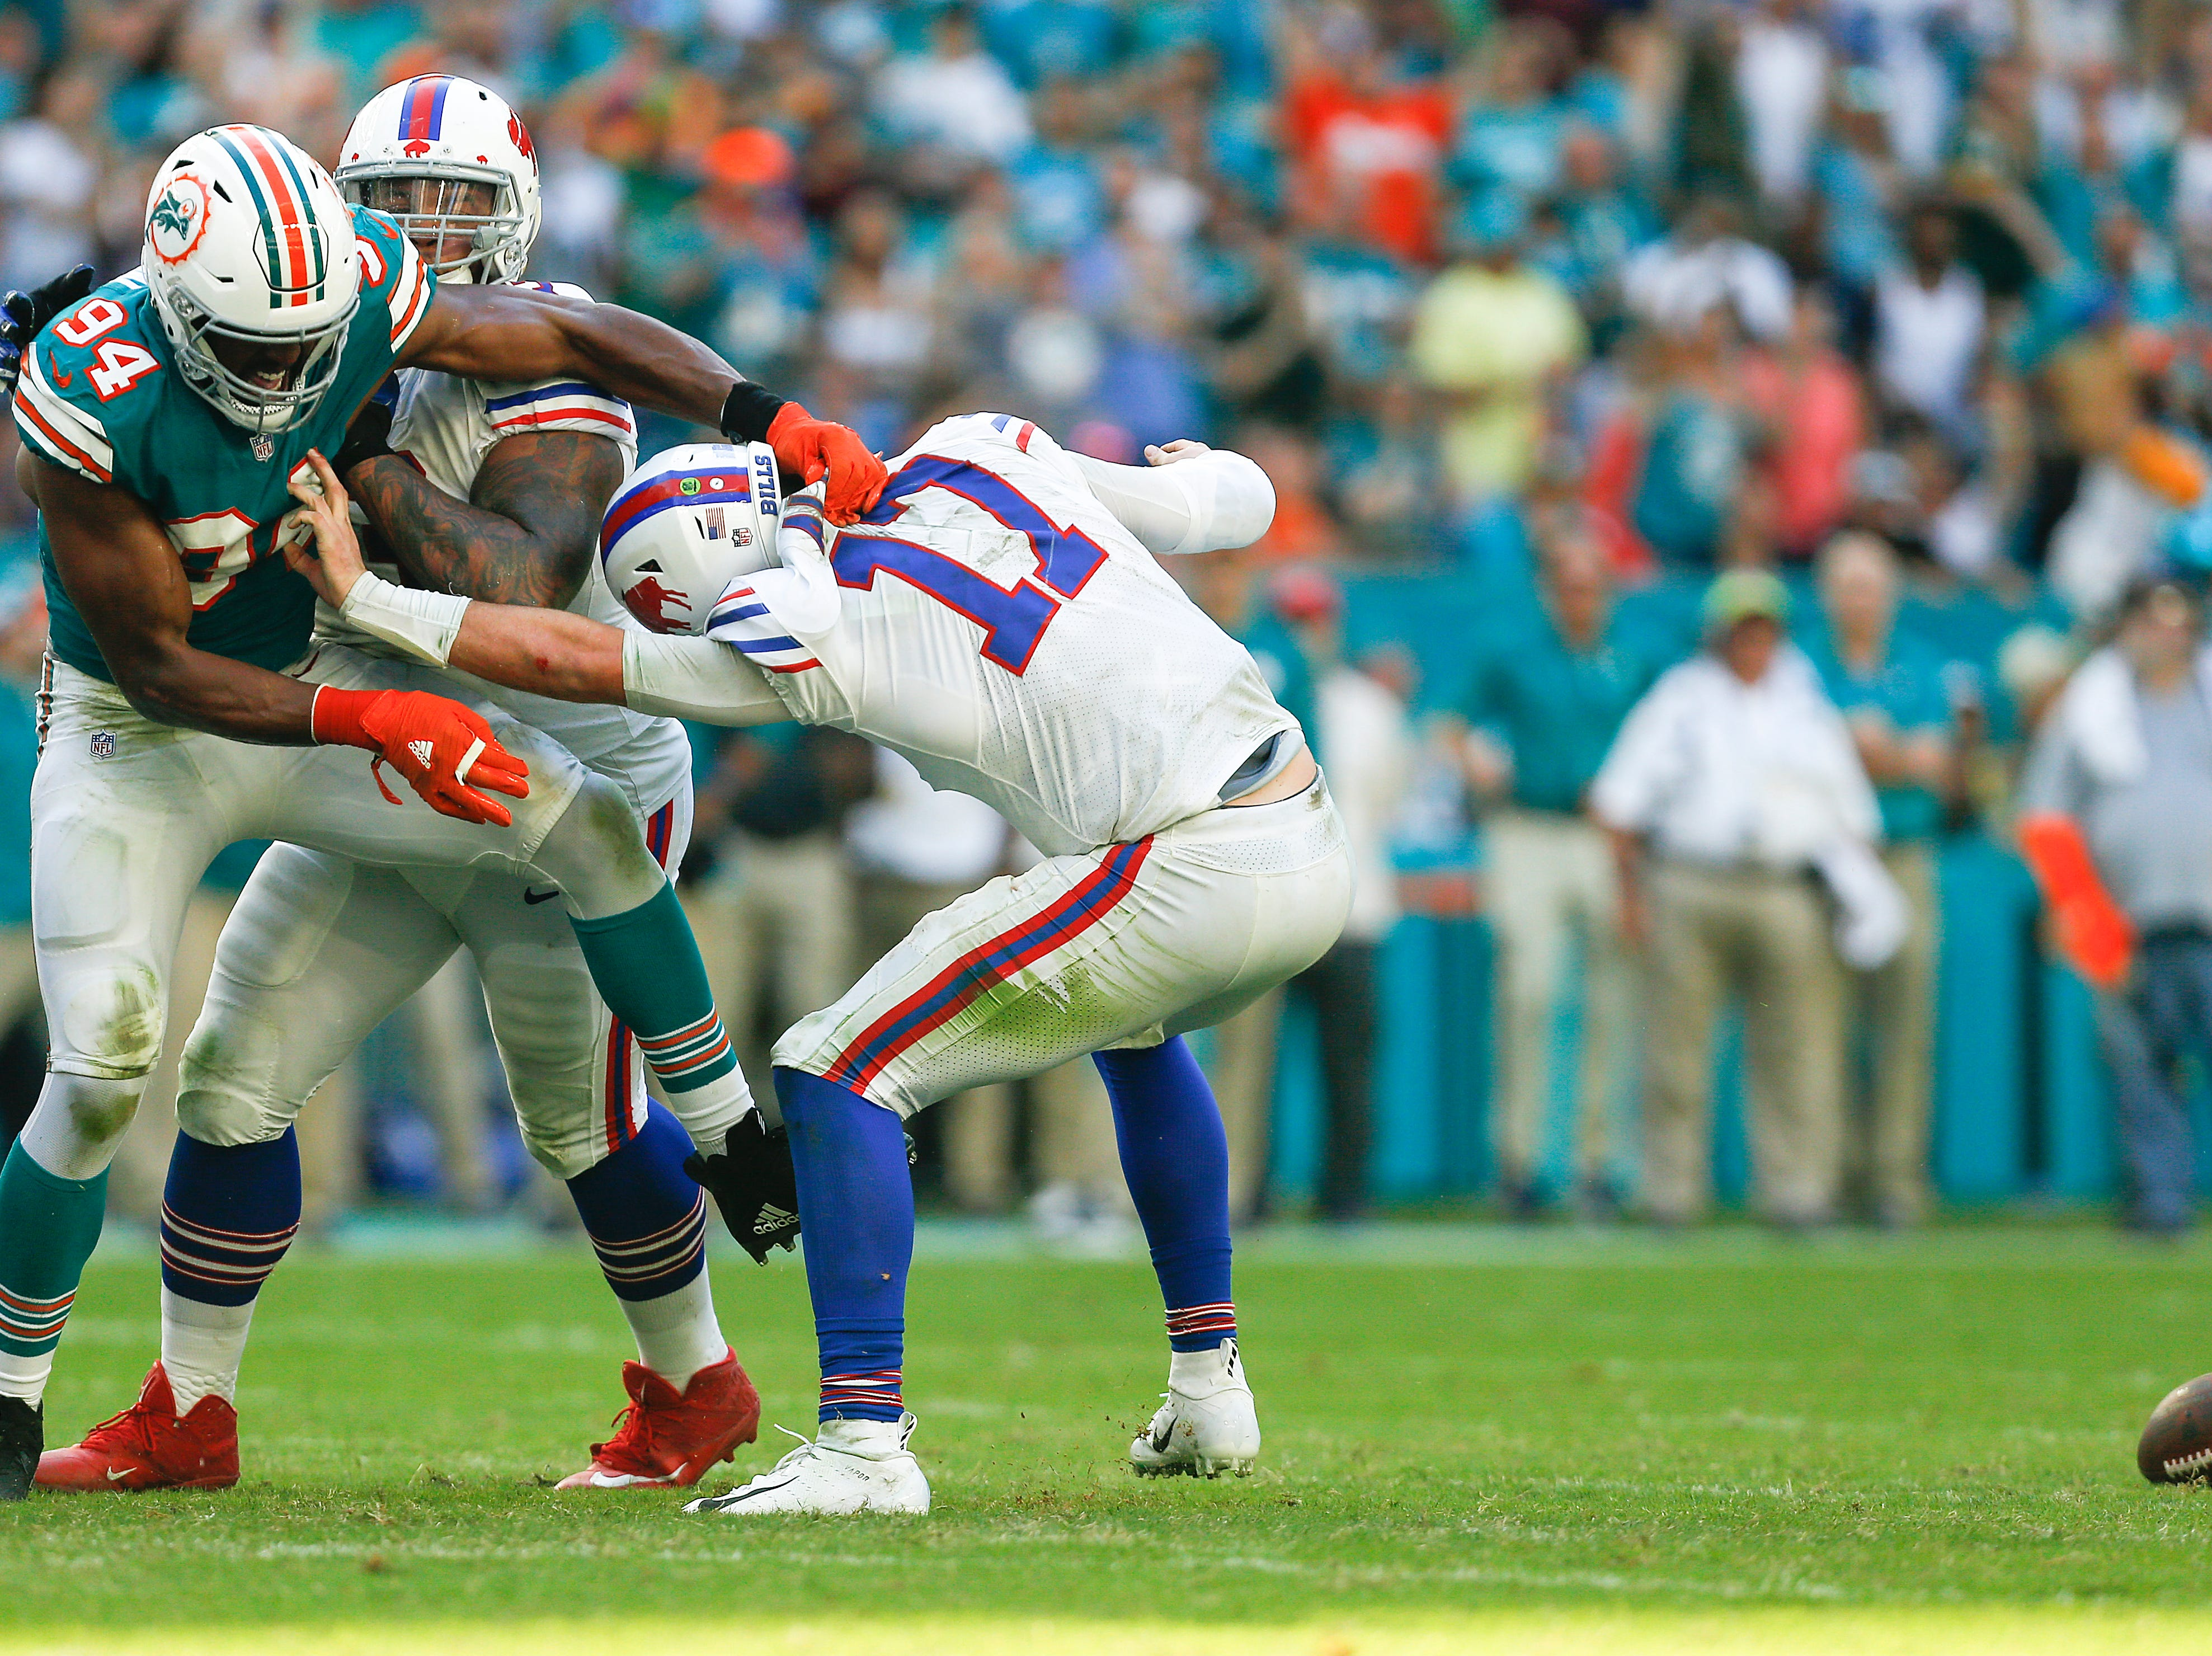 MIAMI, FL - DECEMBER 02:  Robert Quinn #94 of the Miami Dolphins forces Josh Allen #17 of the Buffalo Bills to fumble during the second half at Hard Rock Stadium on December 2, 2018 in Miami, Florida.  (Photo by Michael Reaves/Getty Images)